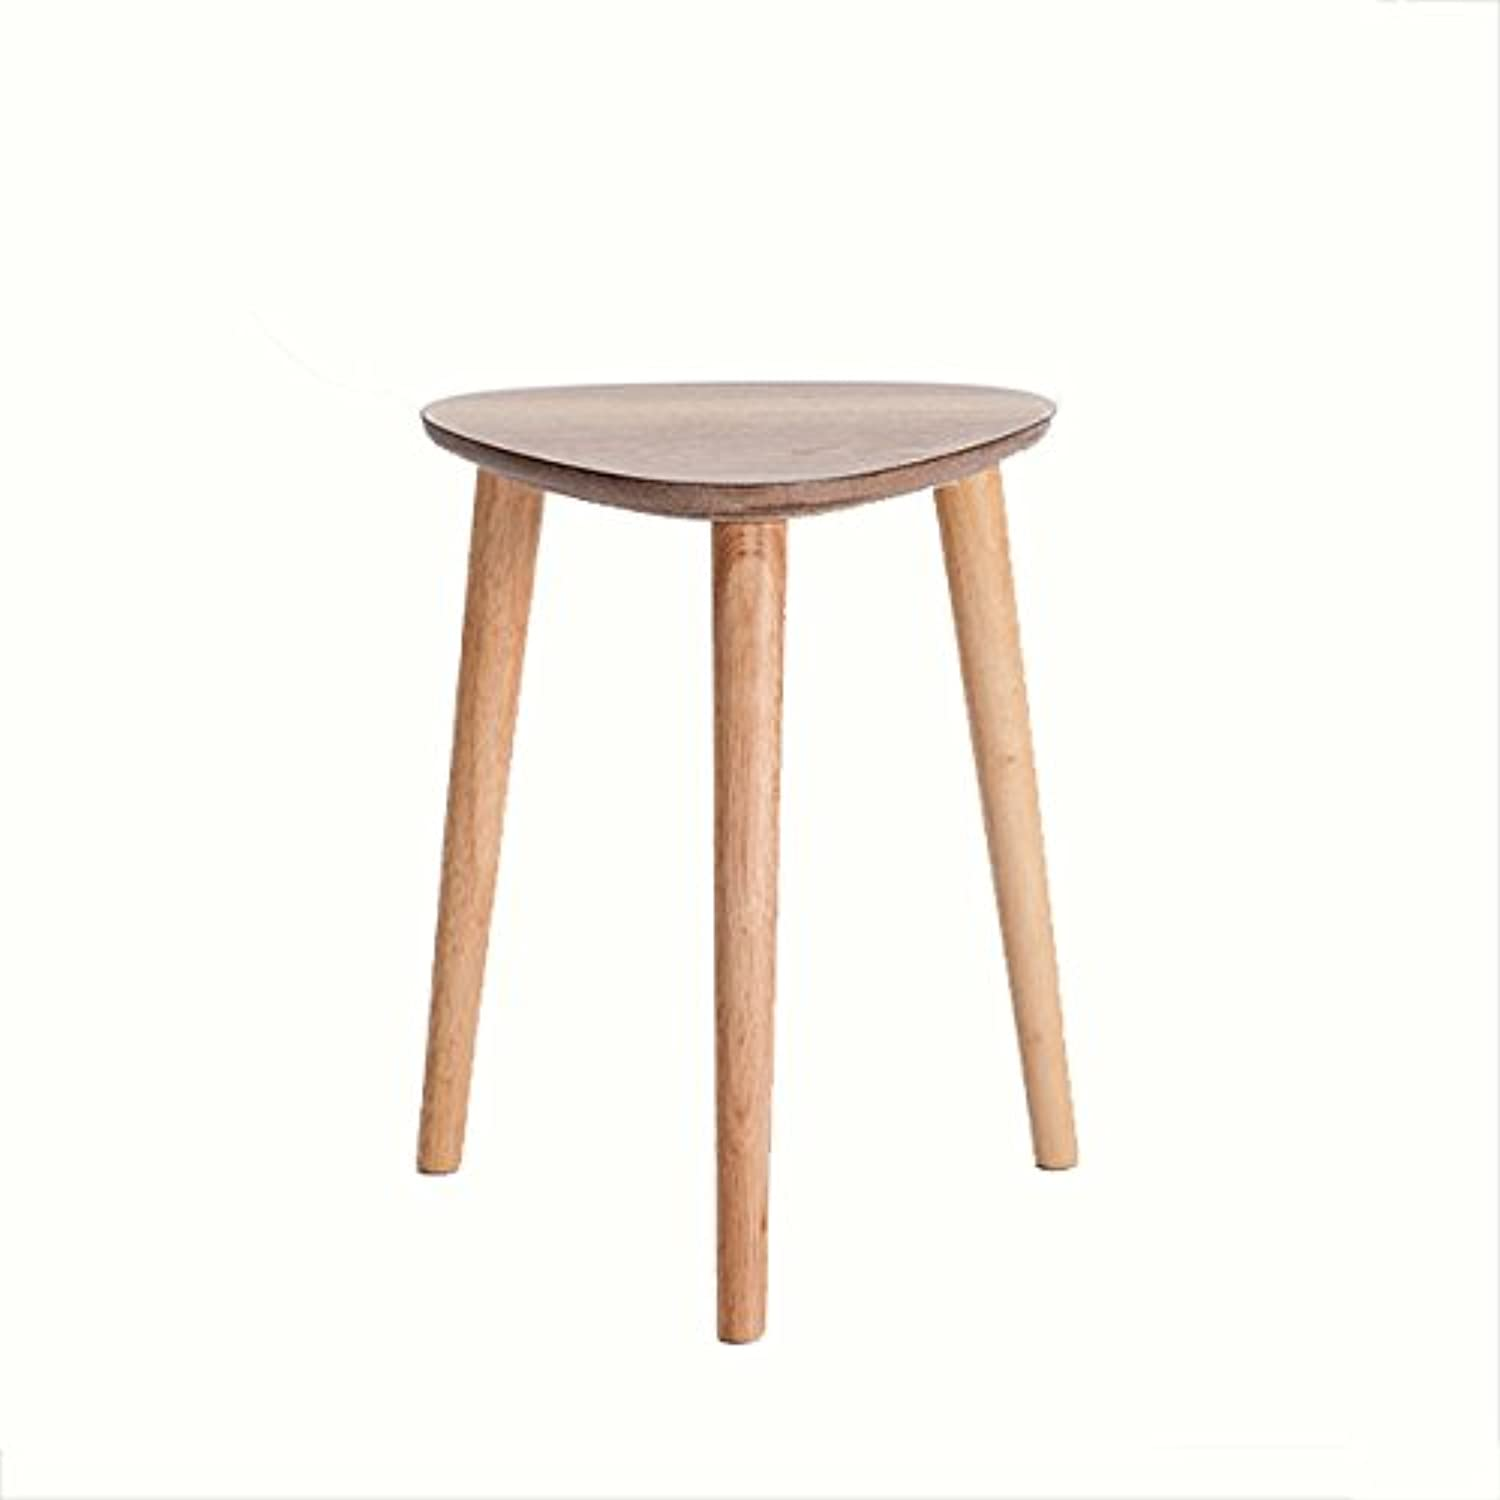 WENJUN Creative Fashion Stool Solid Wood Home Simple Modern Dining Table Stool Nordic Dressing Stool Living Room Triangle Stool (color   Natural color)